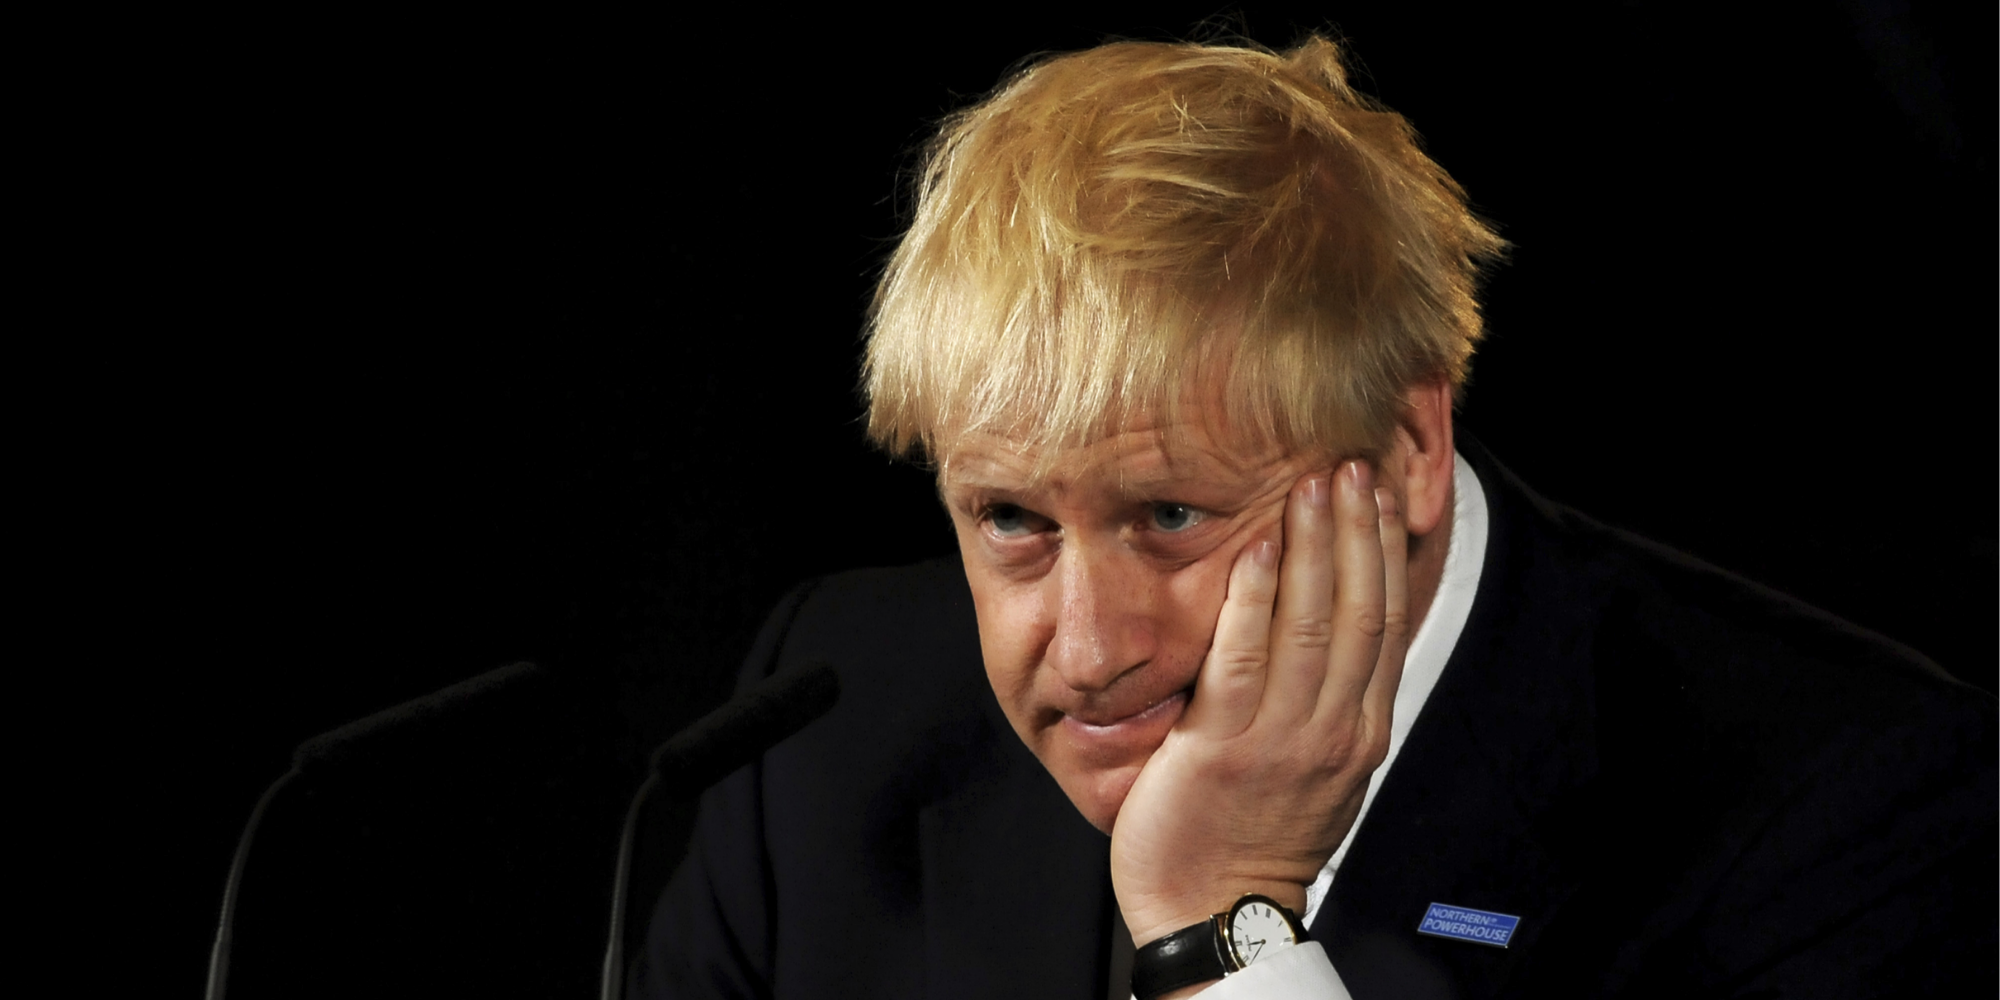 Boris Johnson just said he's been 'forbidden' from making new targets and people reminded him he's literally the PM